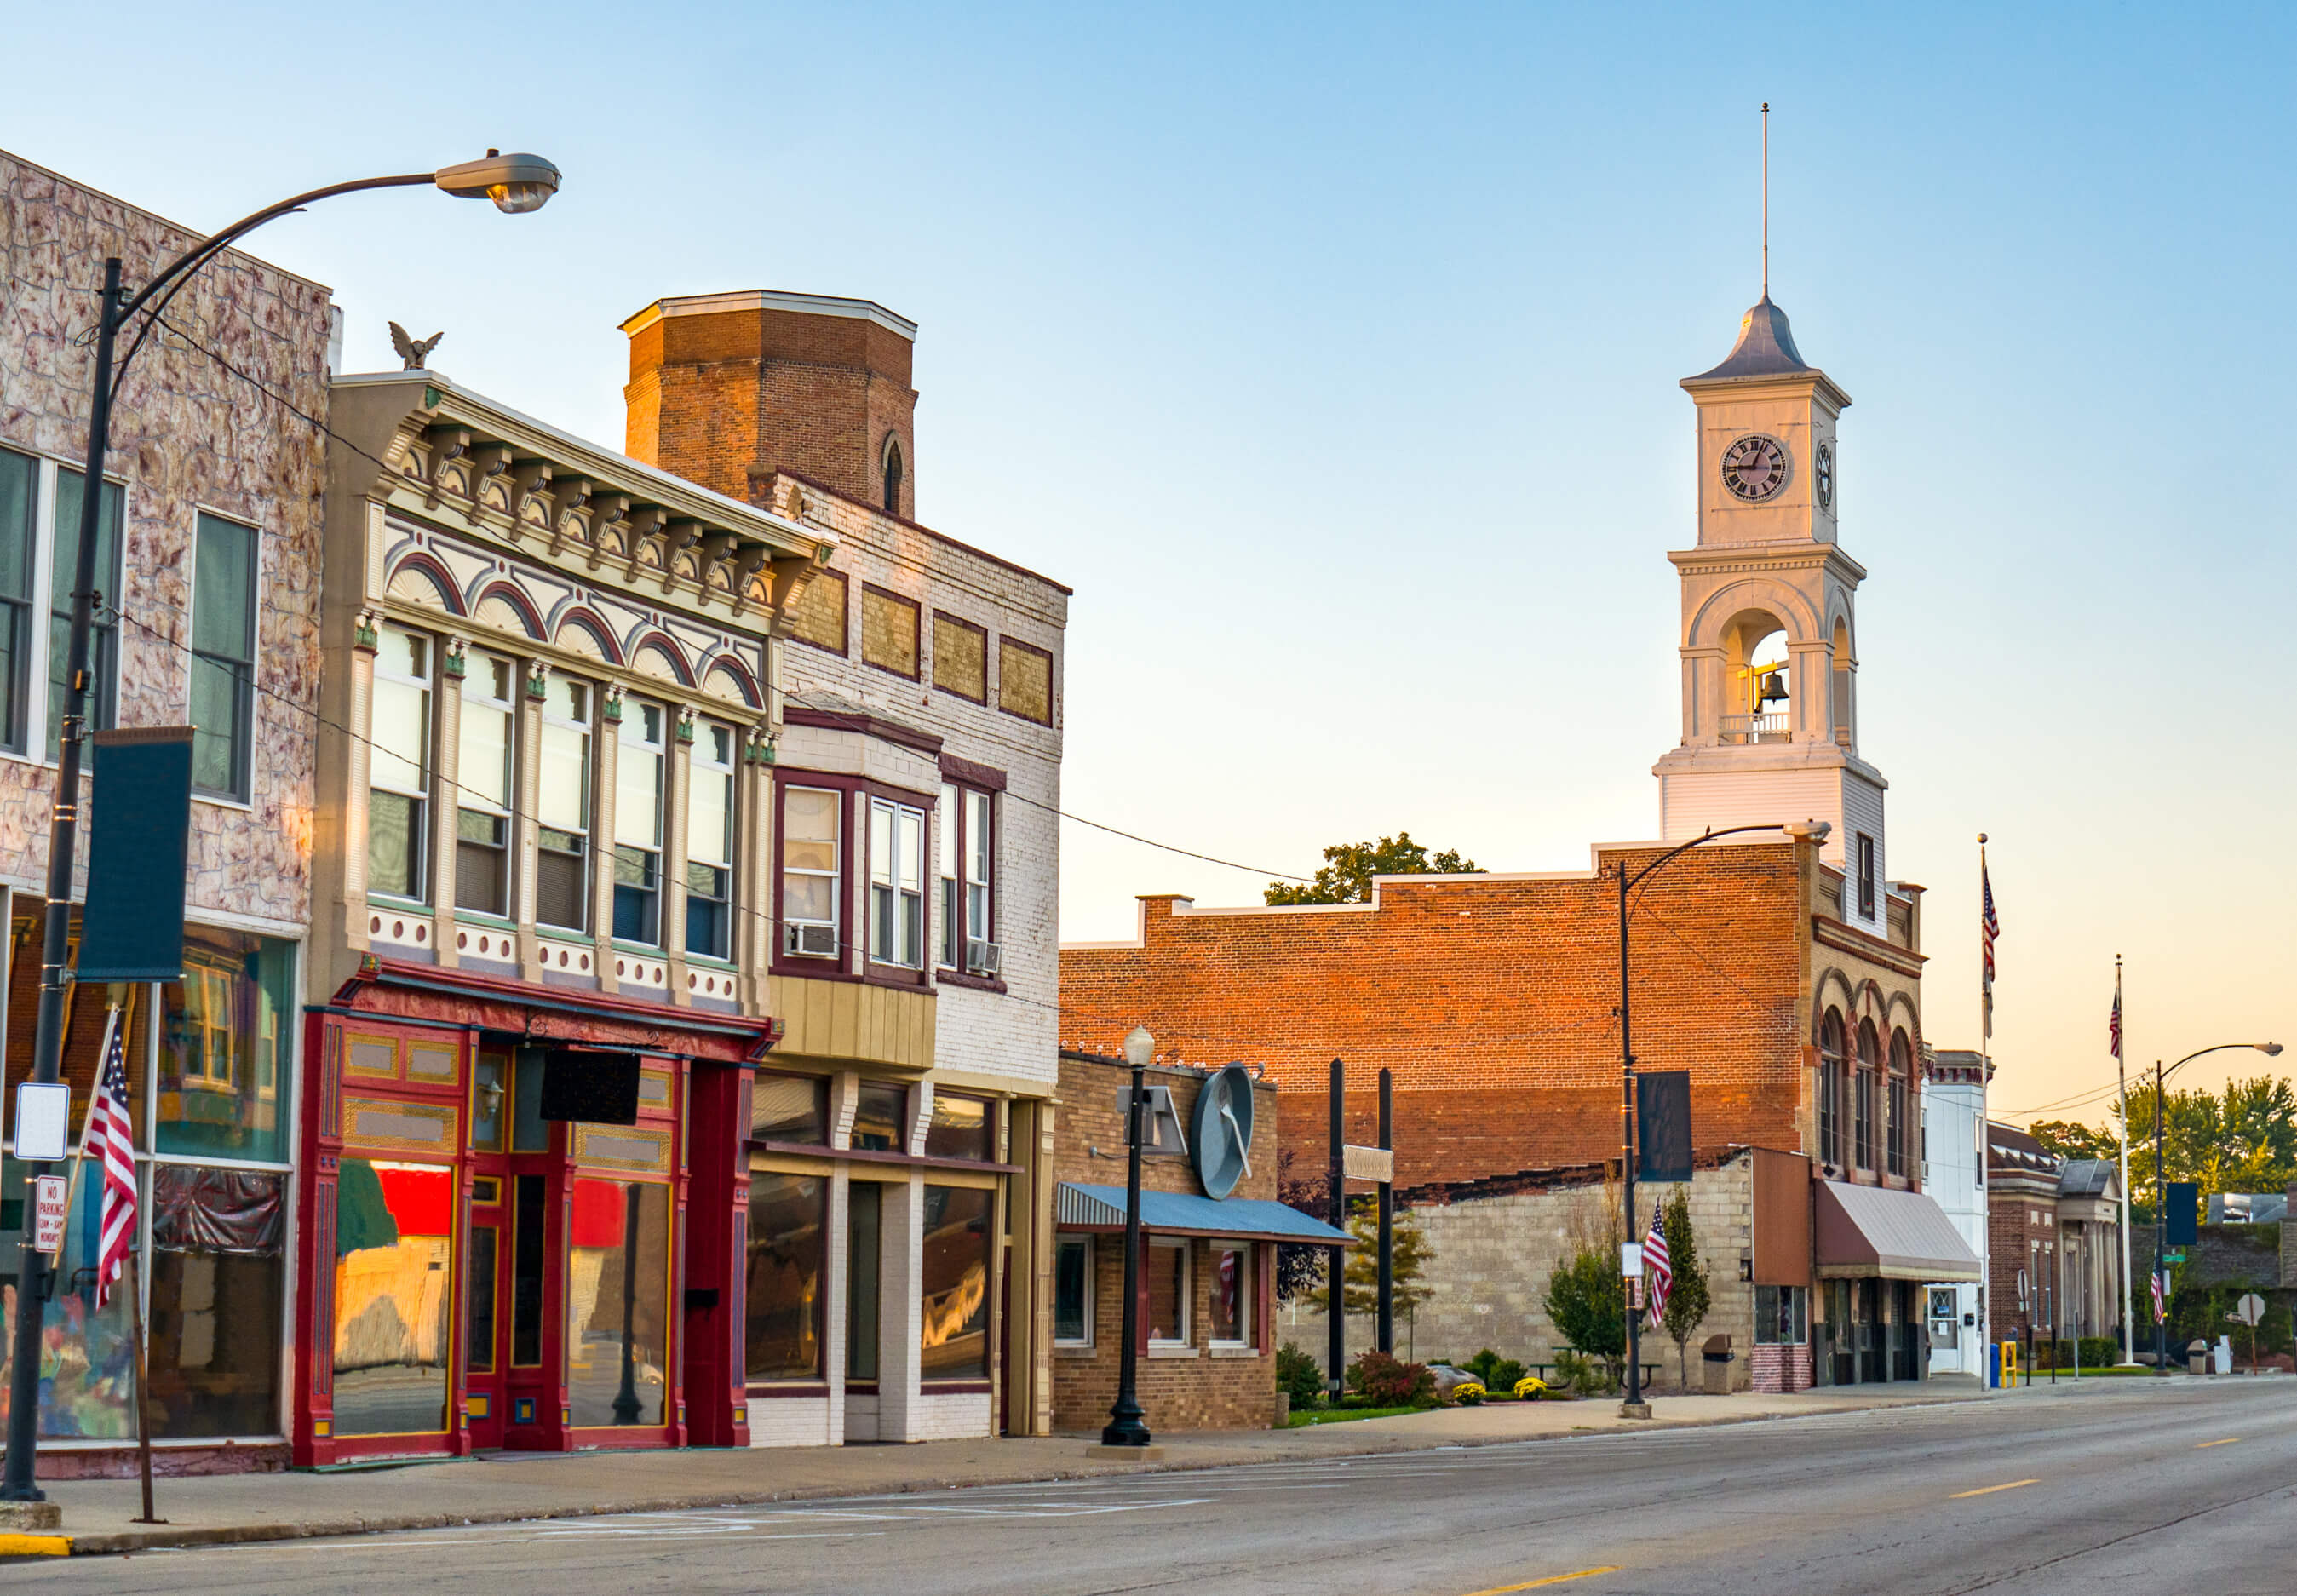 image of a small town on a cloudless late afternoon